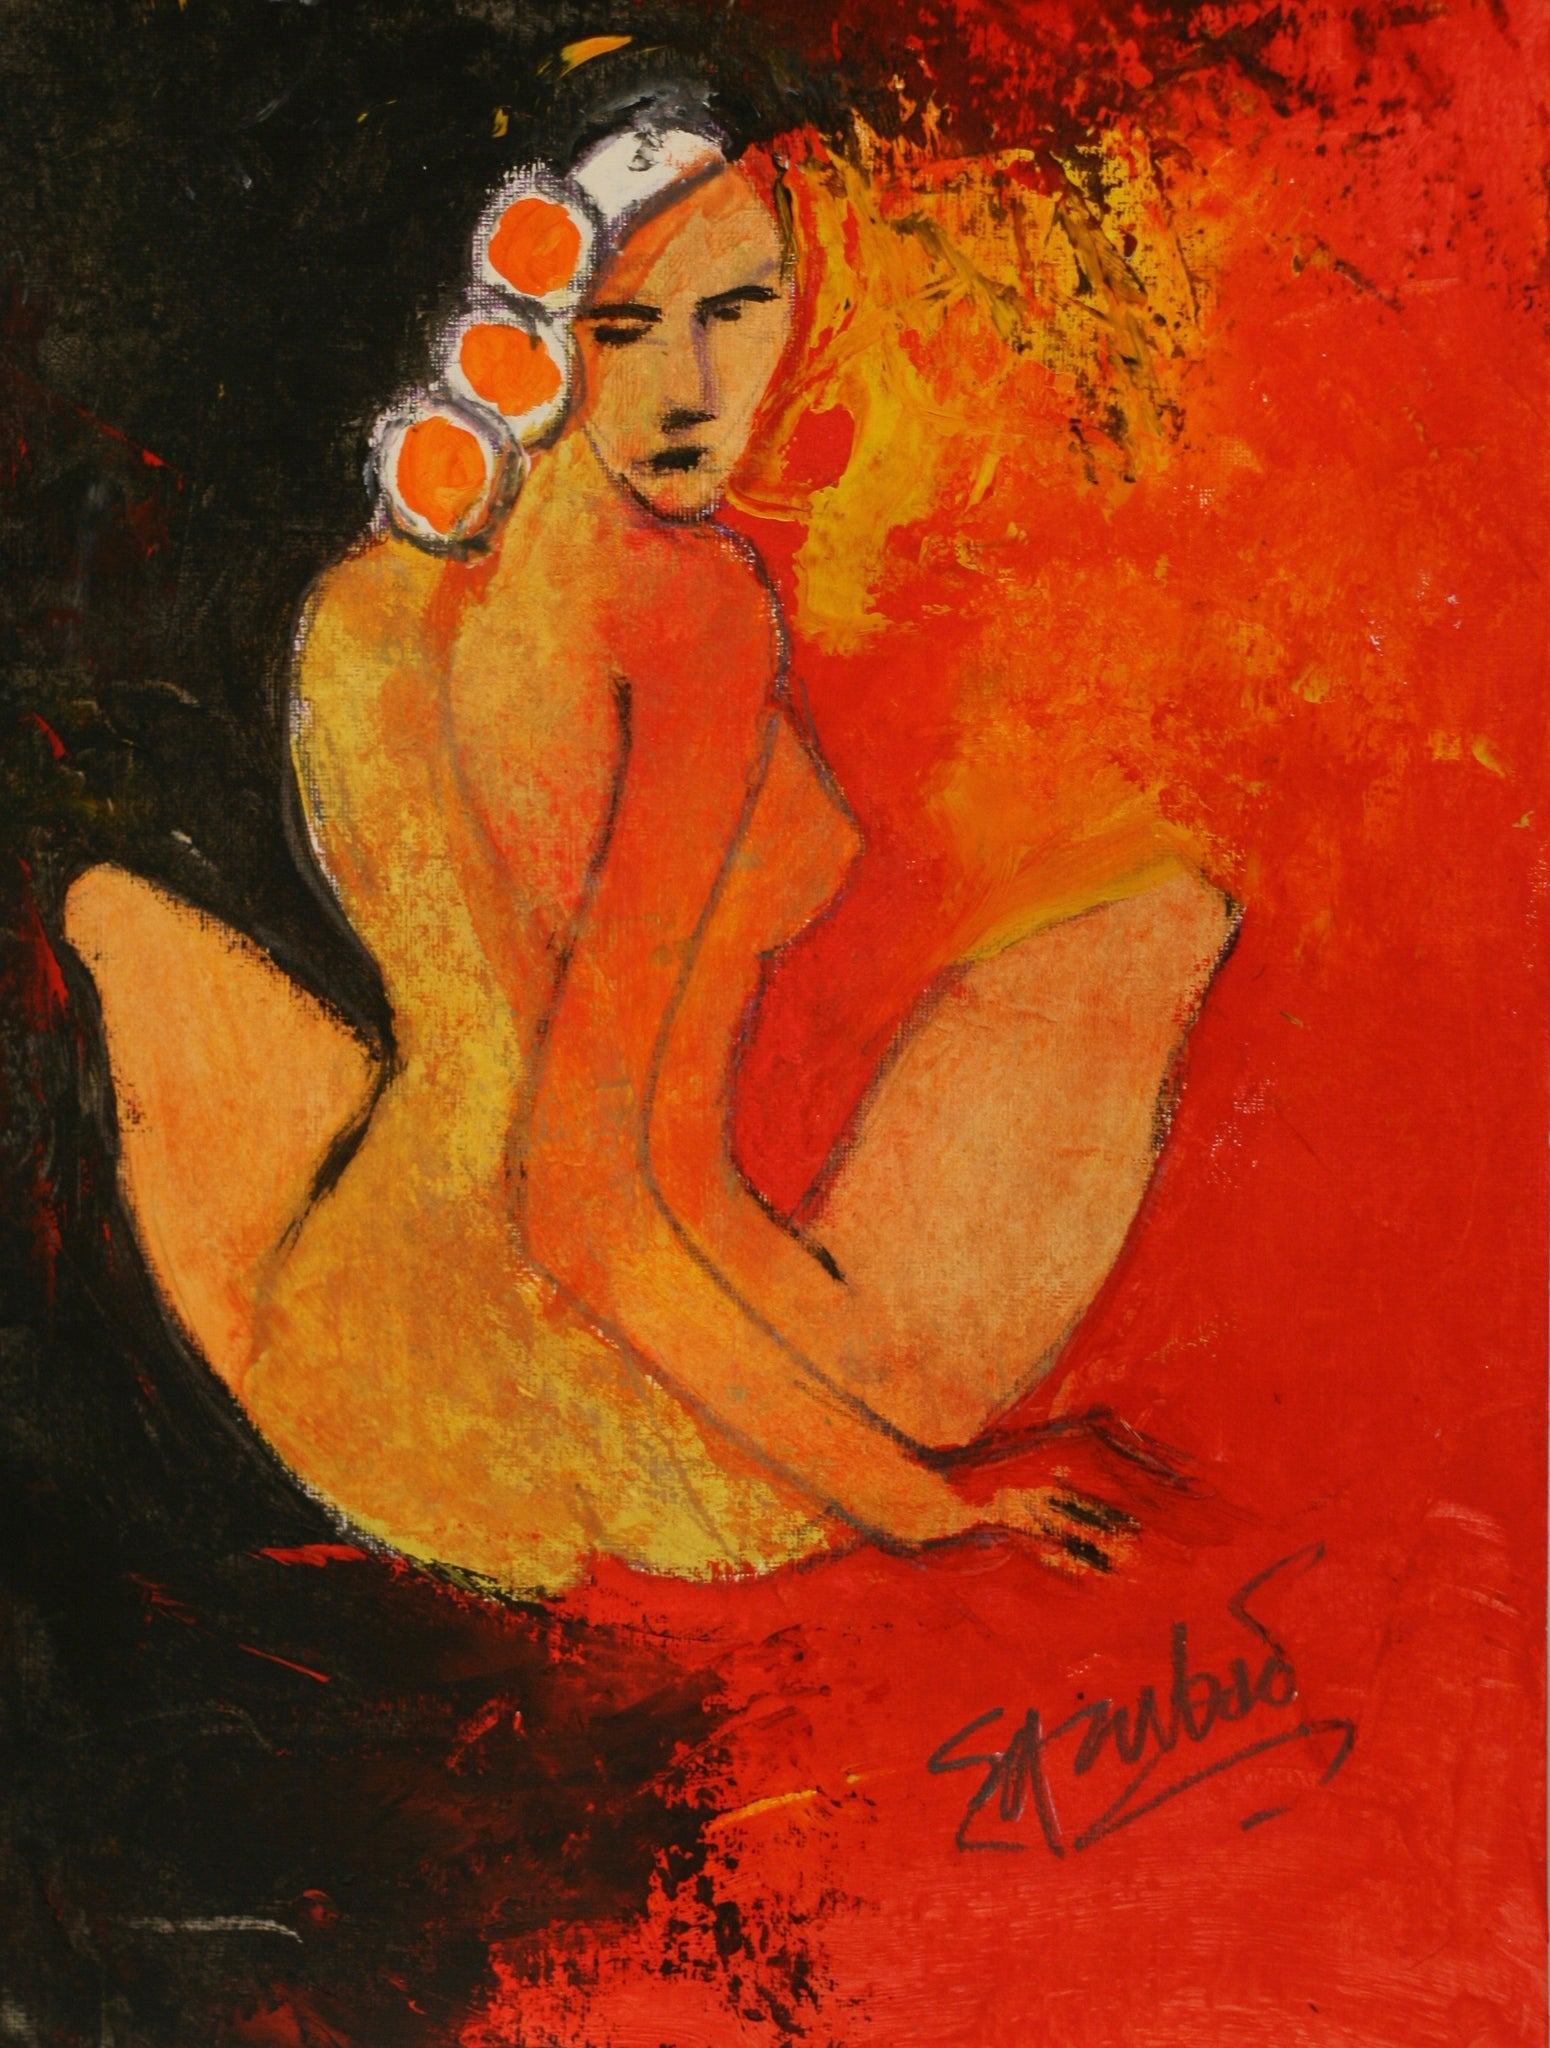 charles sambono - Nude in Red - oil painting